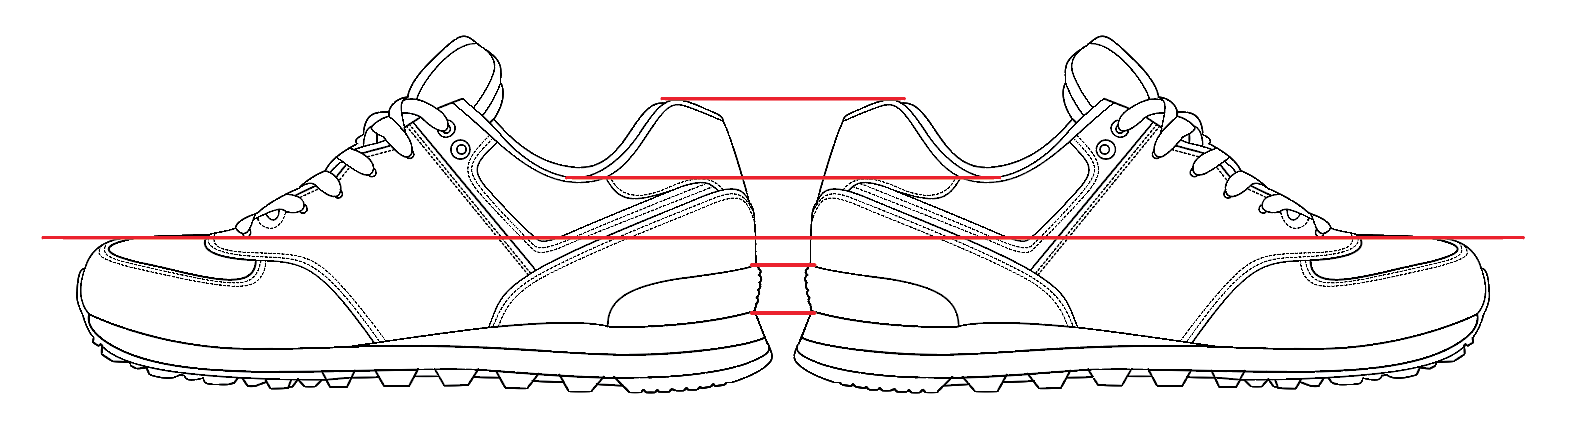 Shoe Anatomy: The Basics On Quality Footwear Construction